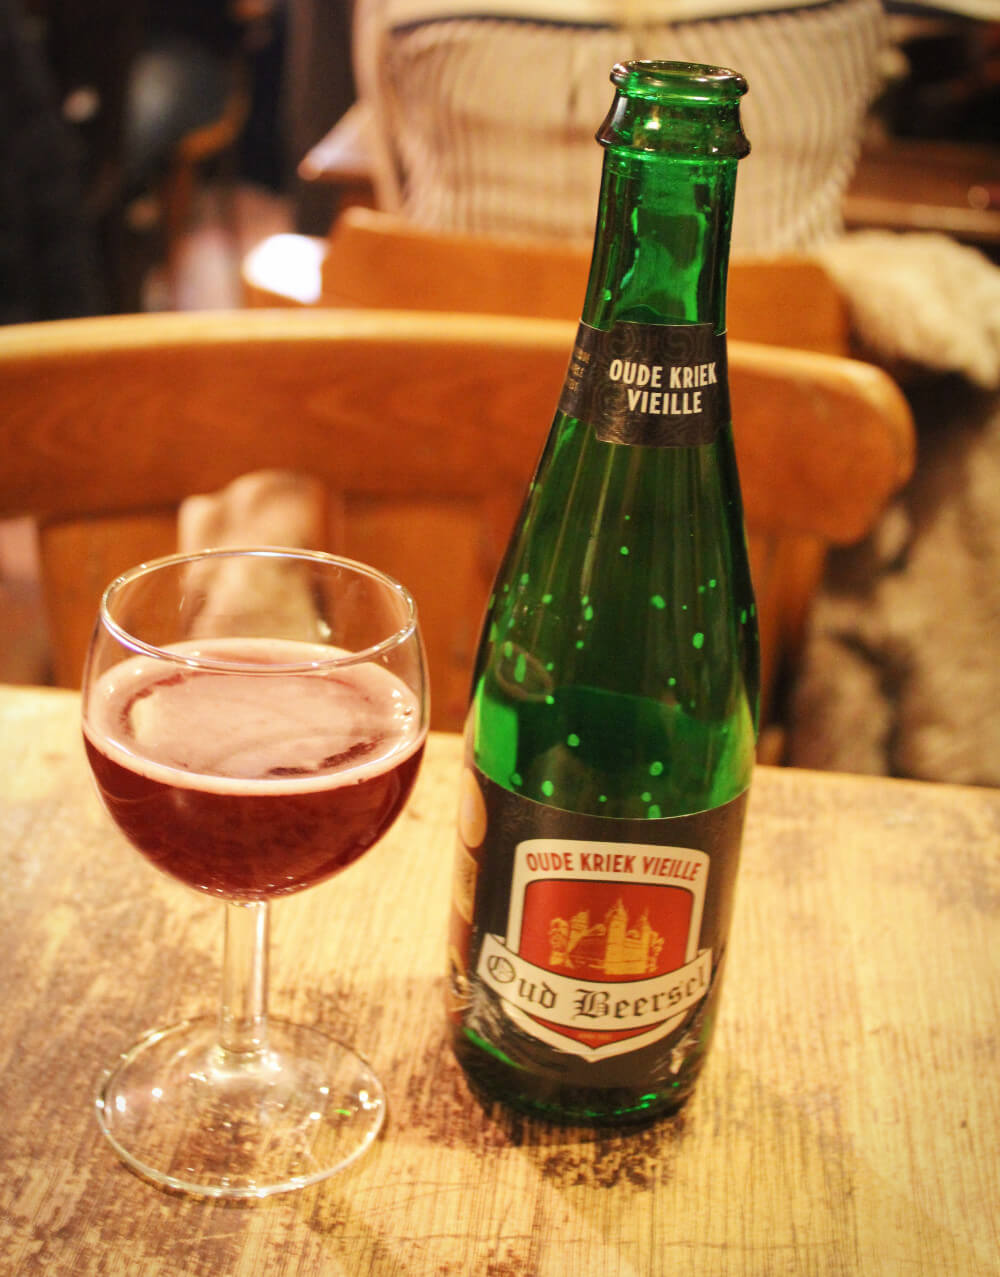 Oud Kriek Beersel is a traditional Belgian Lambic beer, made with sour cherries and wild yeast. It's classic, unique, and yummy - and one of the best beers to drink in Belgium!